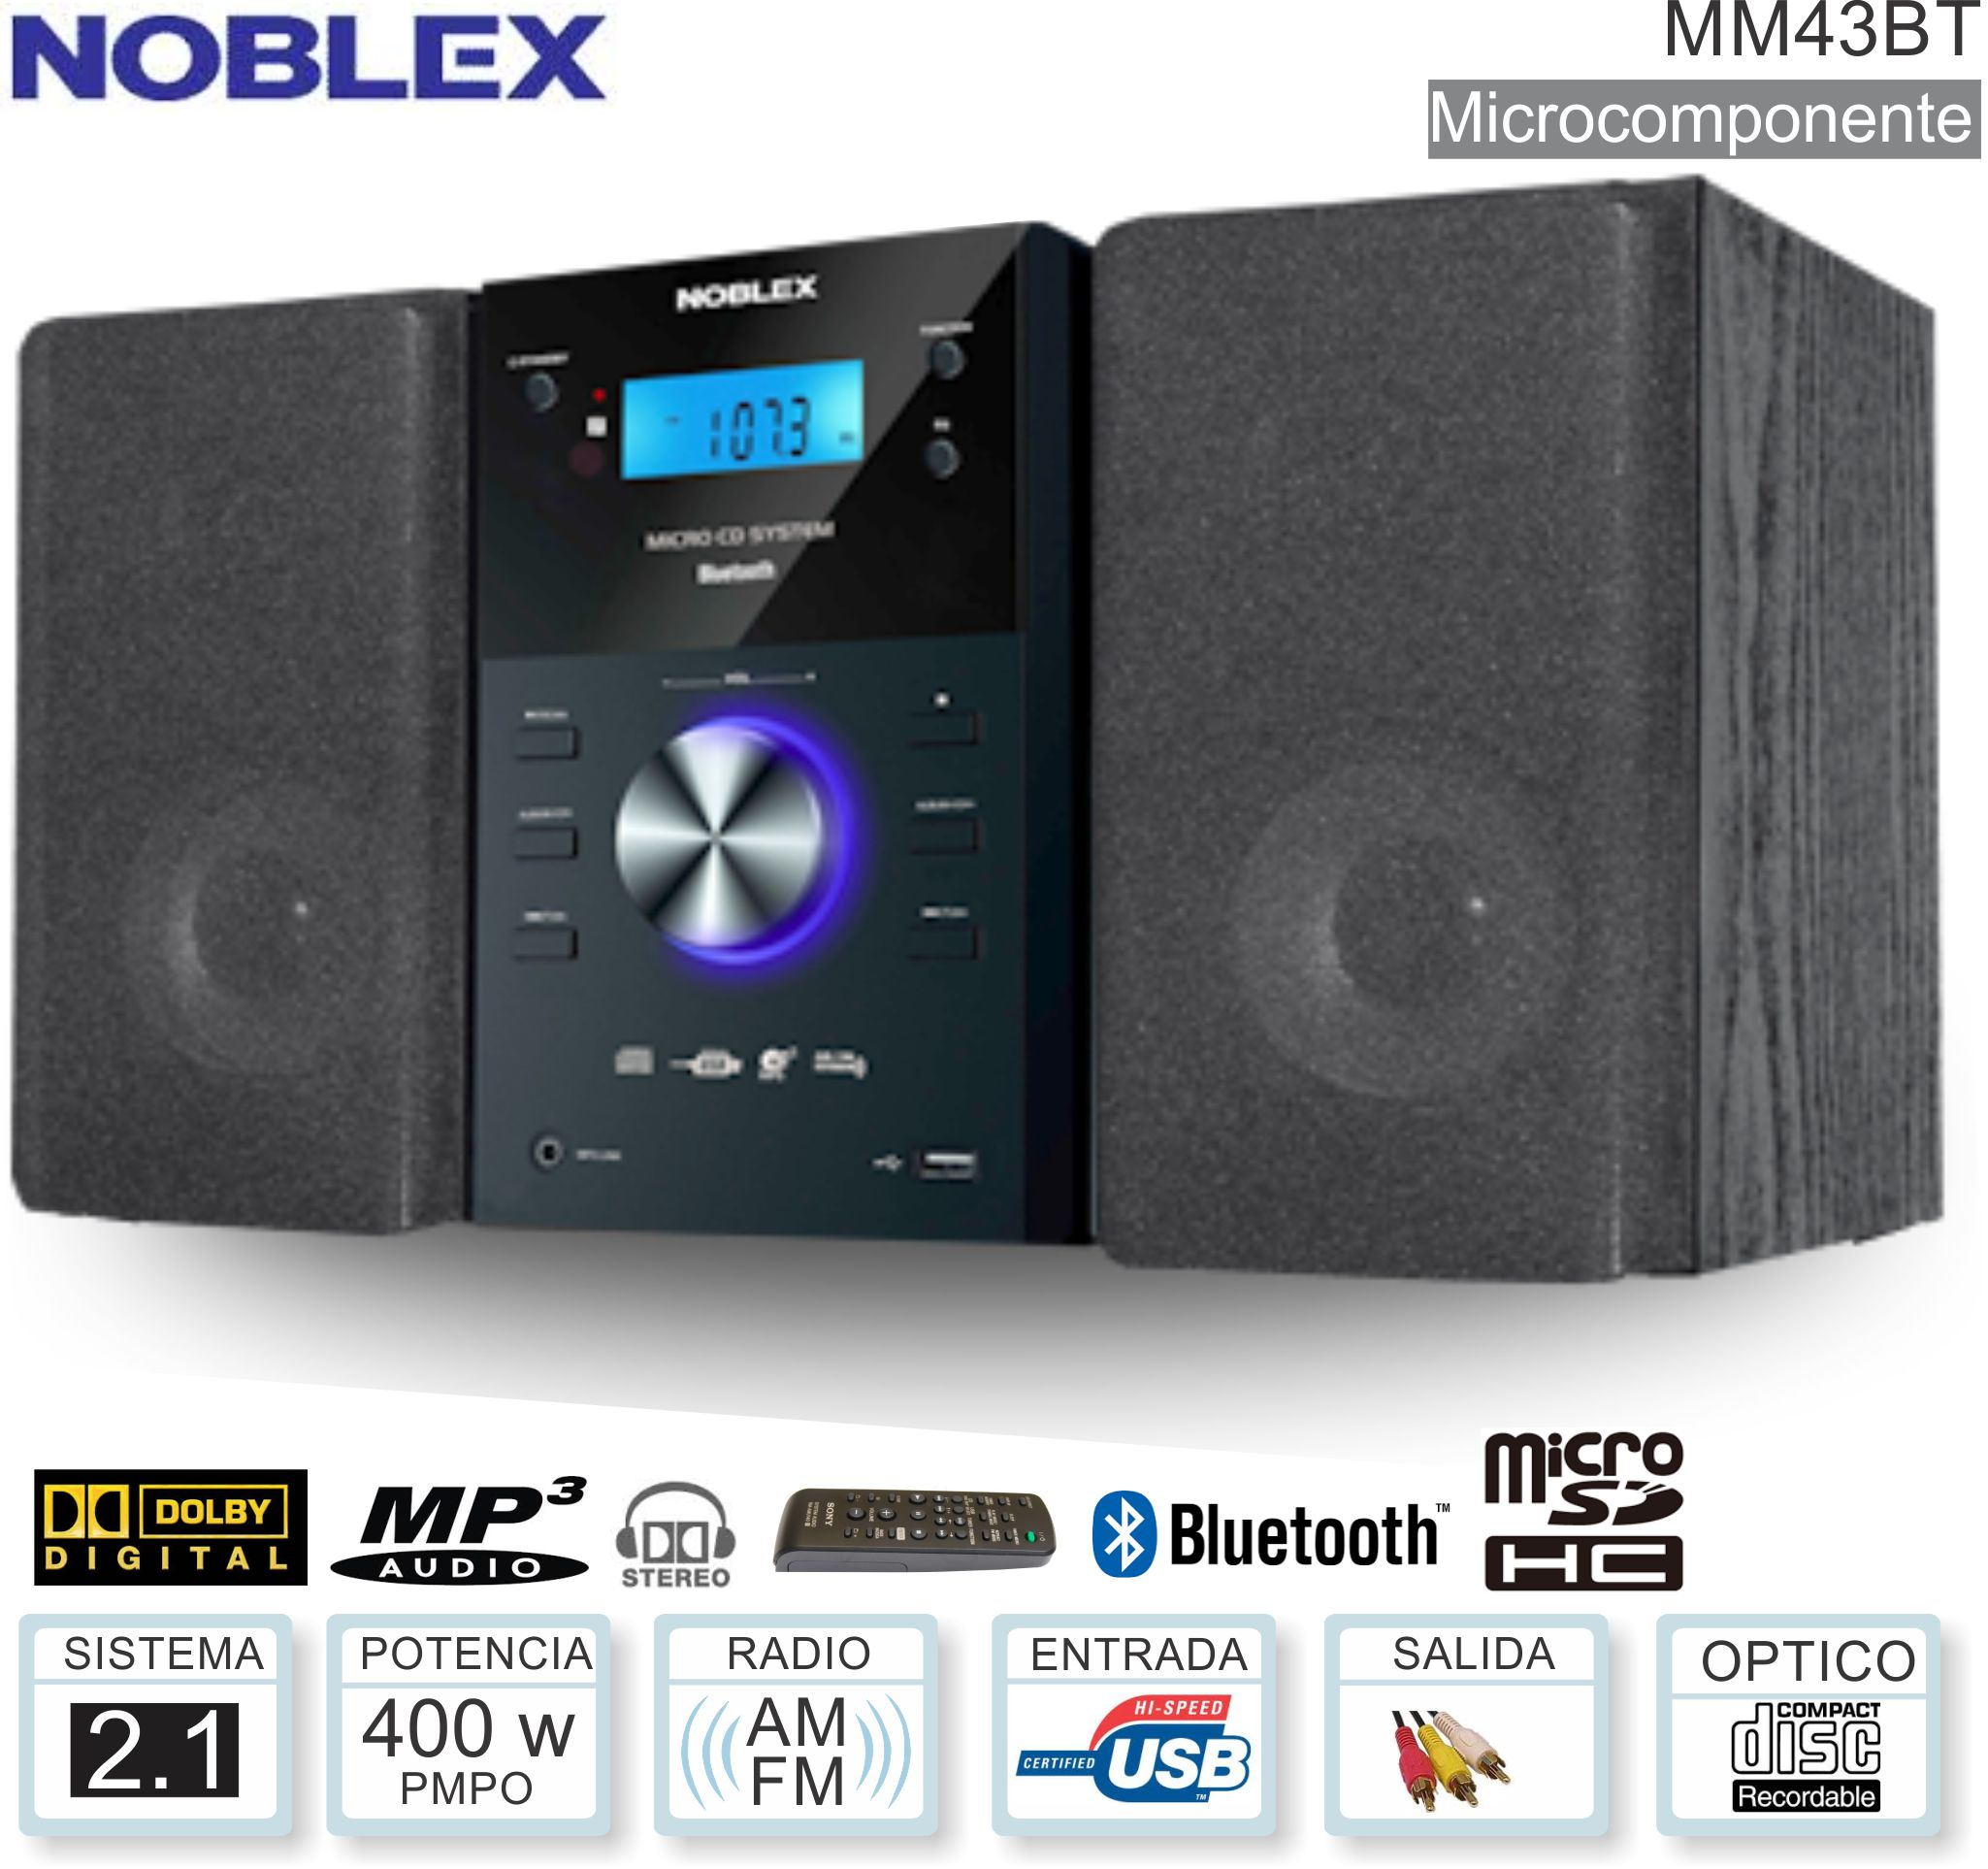 Microcomponente NOBLEX MM43BT